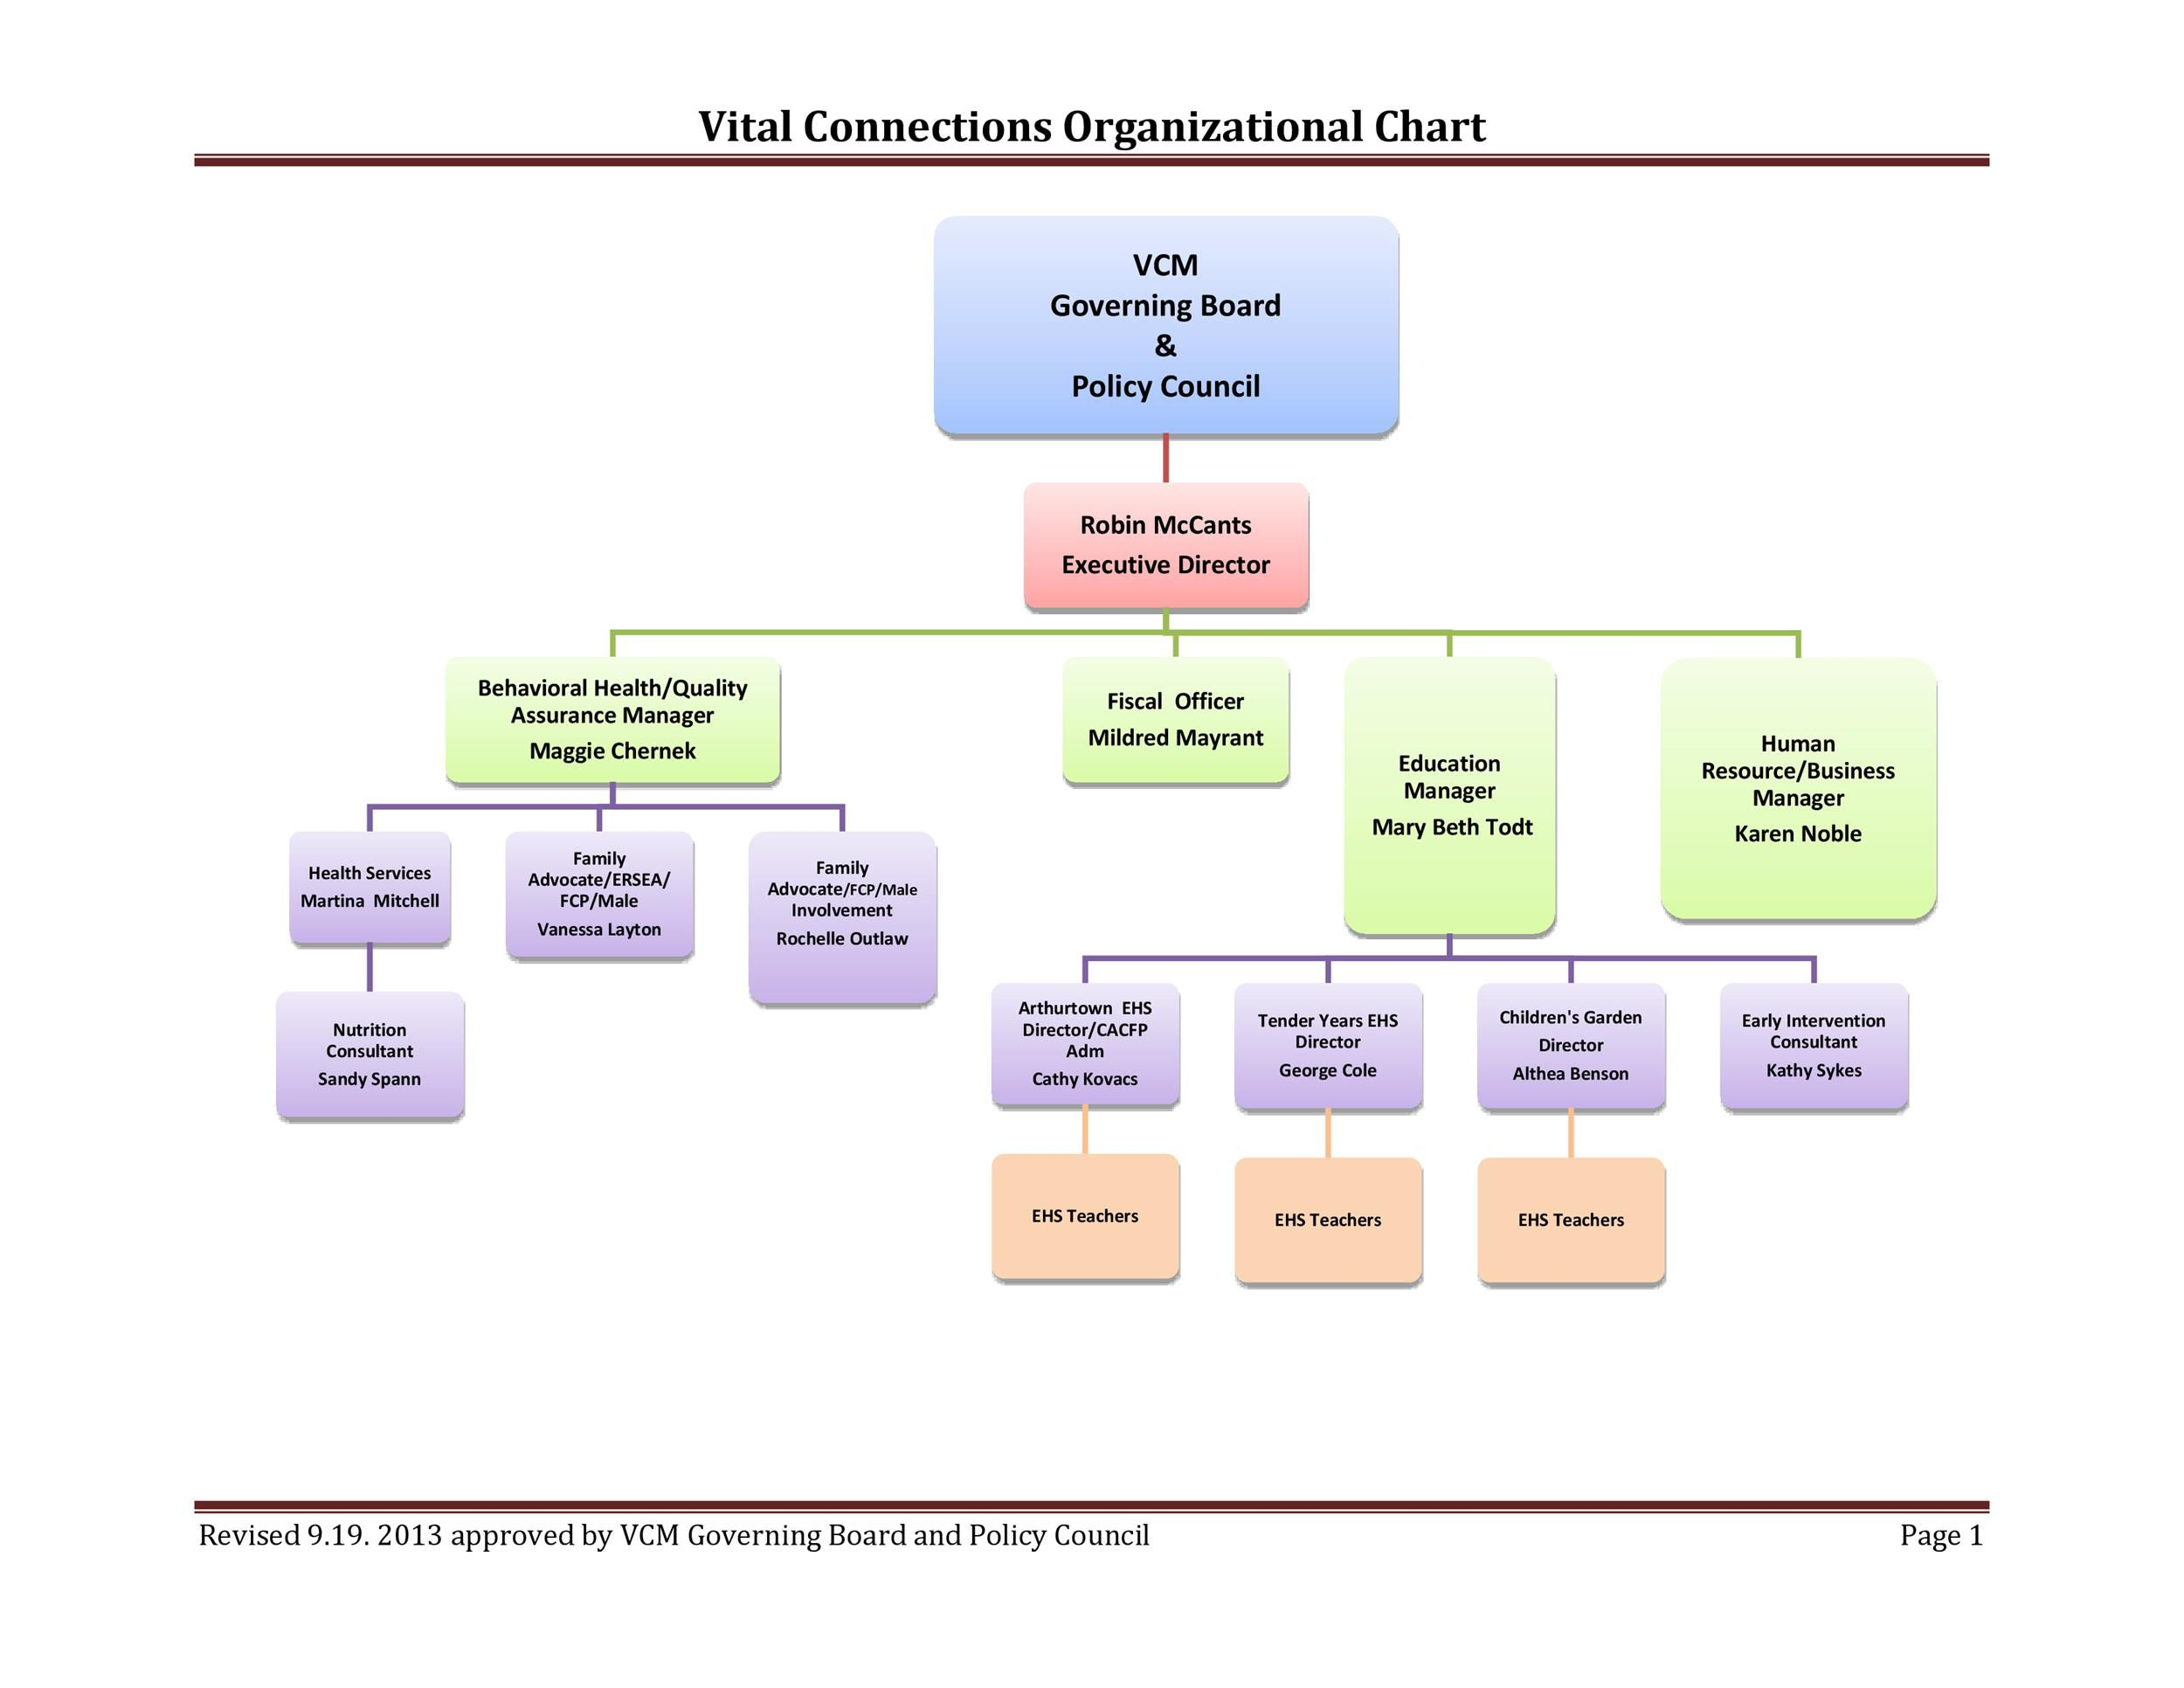 005 Excellent Hierarchy Organizational Chart Template Word Highest Quality  Hierarchical Organization -Full